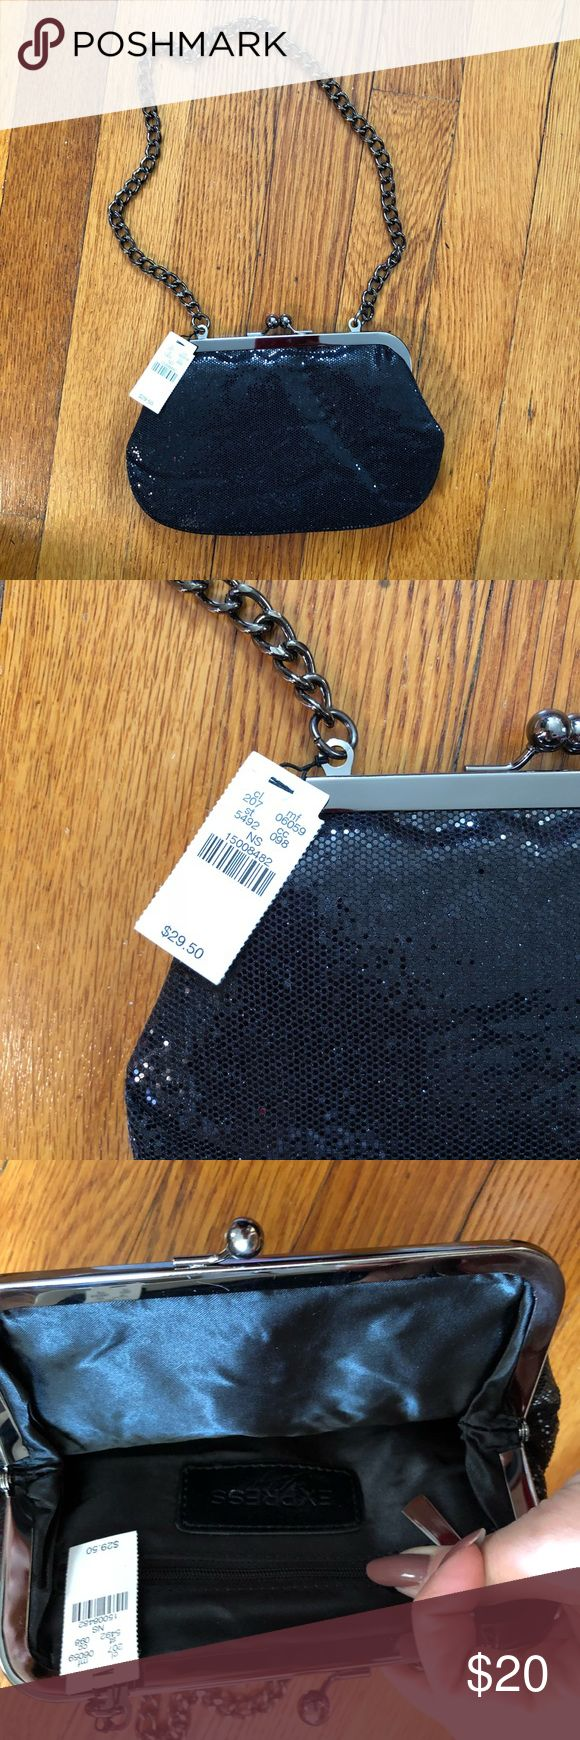 NWT Express Sparkly Clutch NWT Express Sparkly Clutch in Black!  •Brand New! •Great for evenings and parties Express Bags Clutches & Wristlets